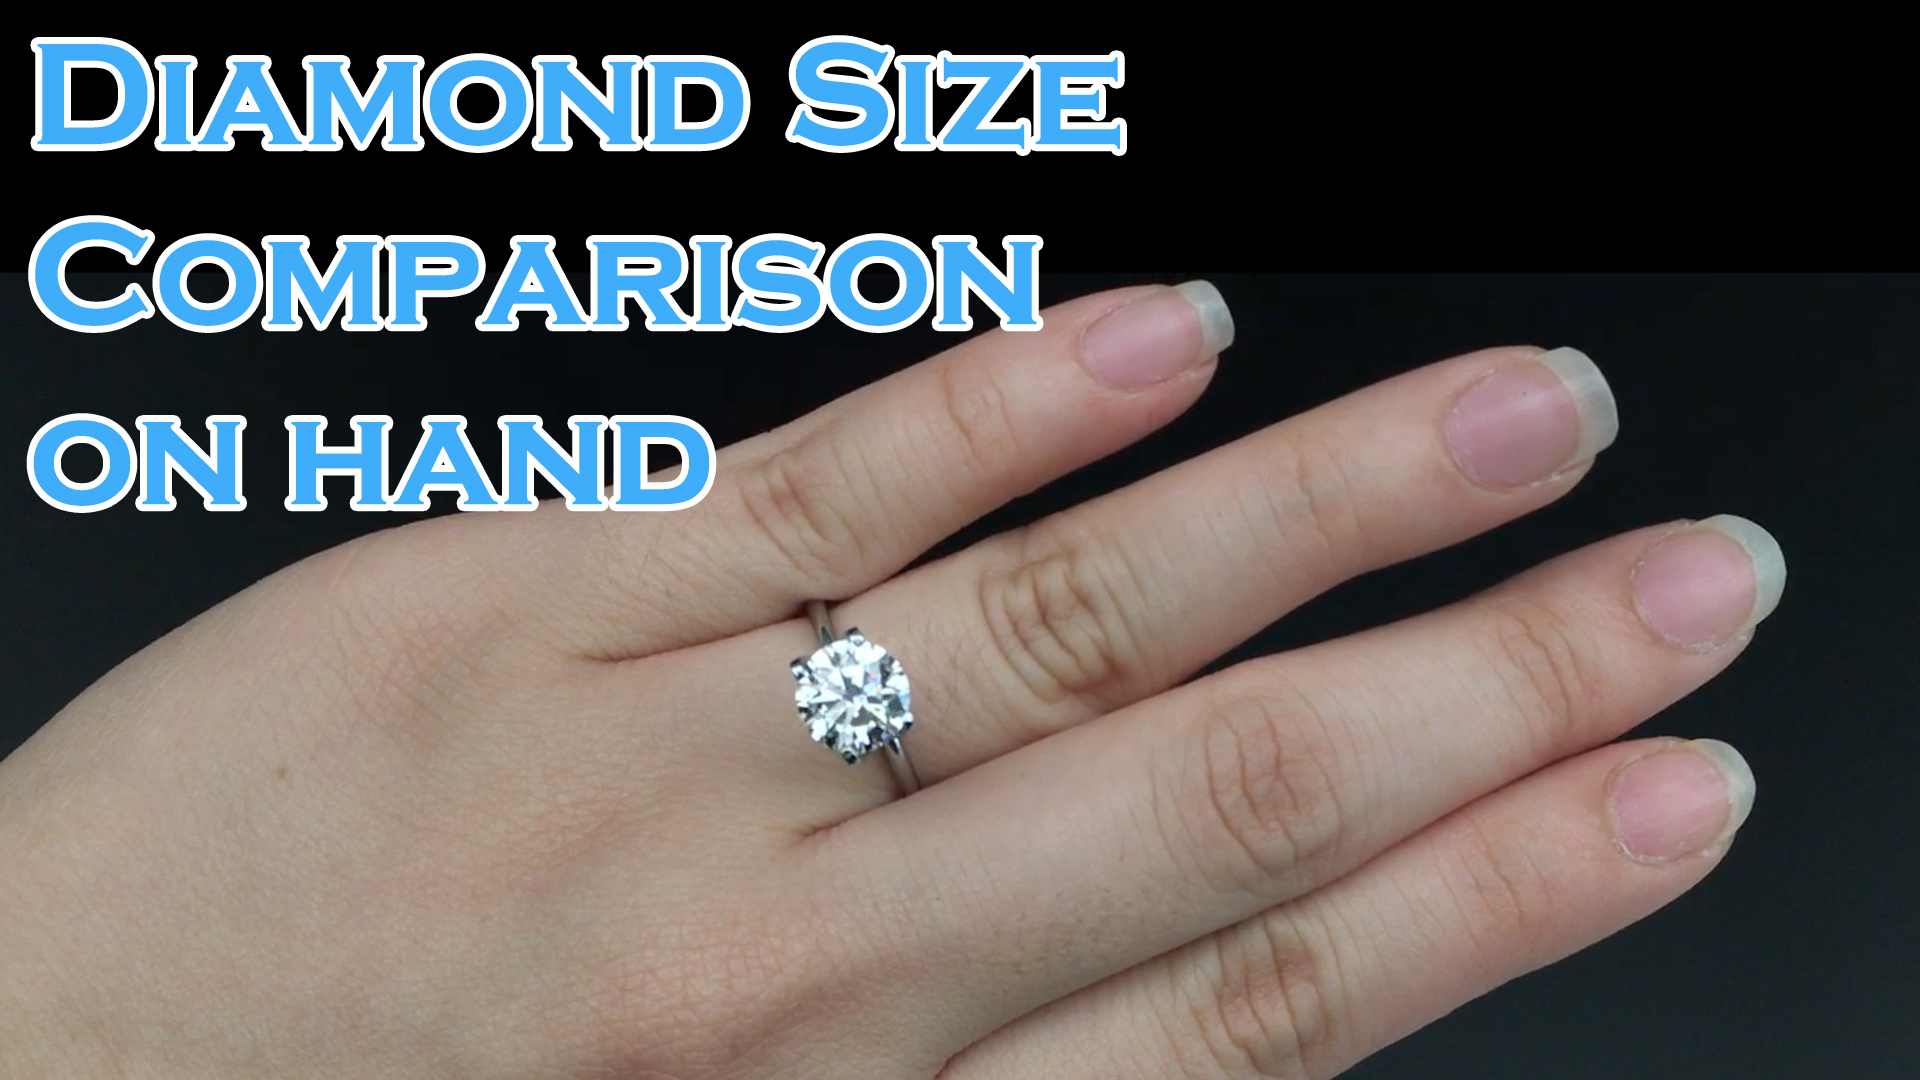 Diamond Size comparison on hand; 0.3ct, 0.4ct, 0.5ct, 0.6ct, 0.7ct, 0.8ct, 0.9ct, 1ct, 1.5ct, 2ct